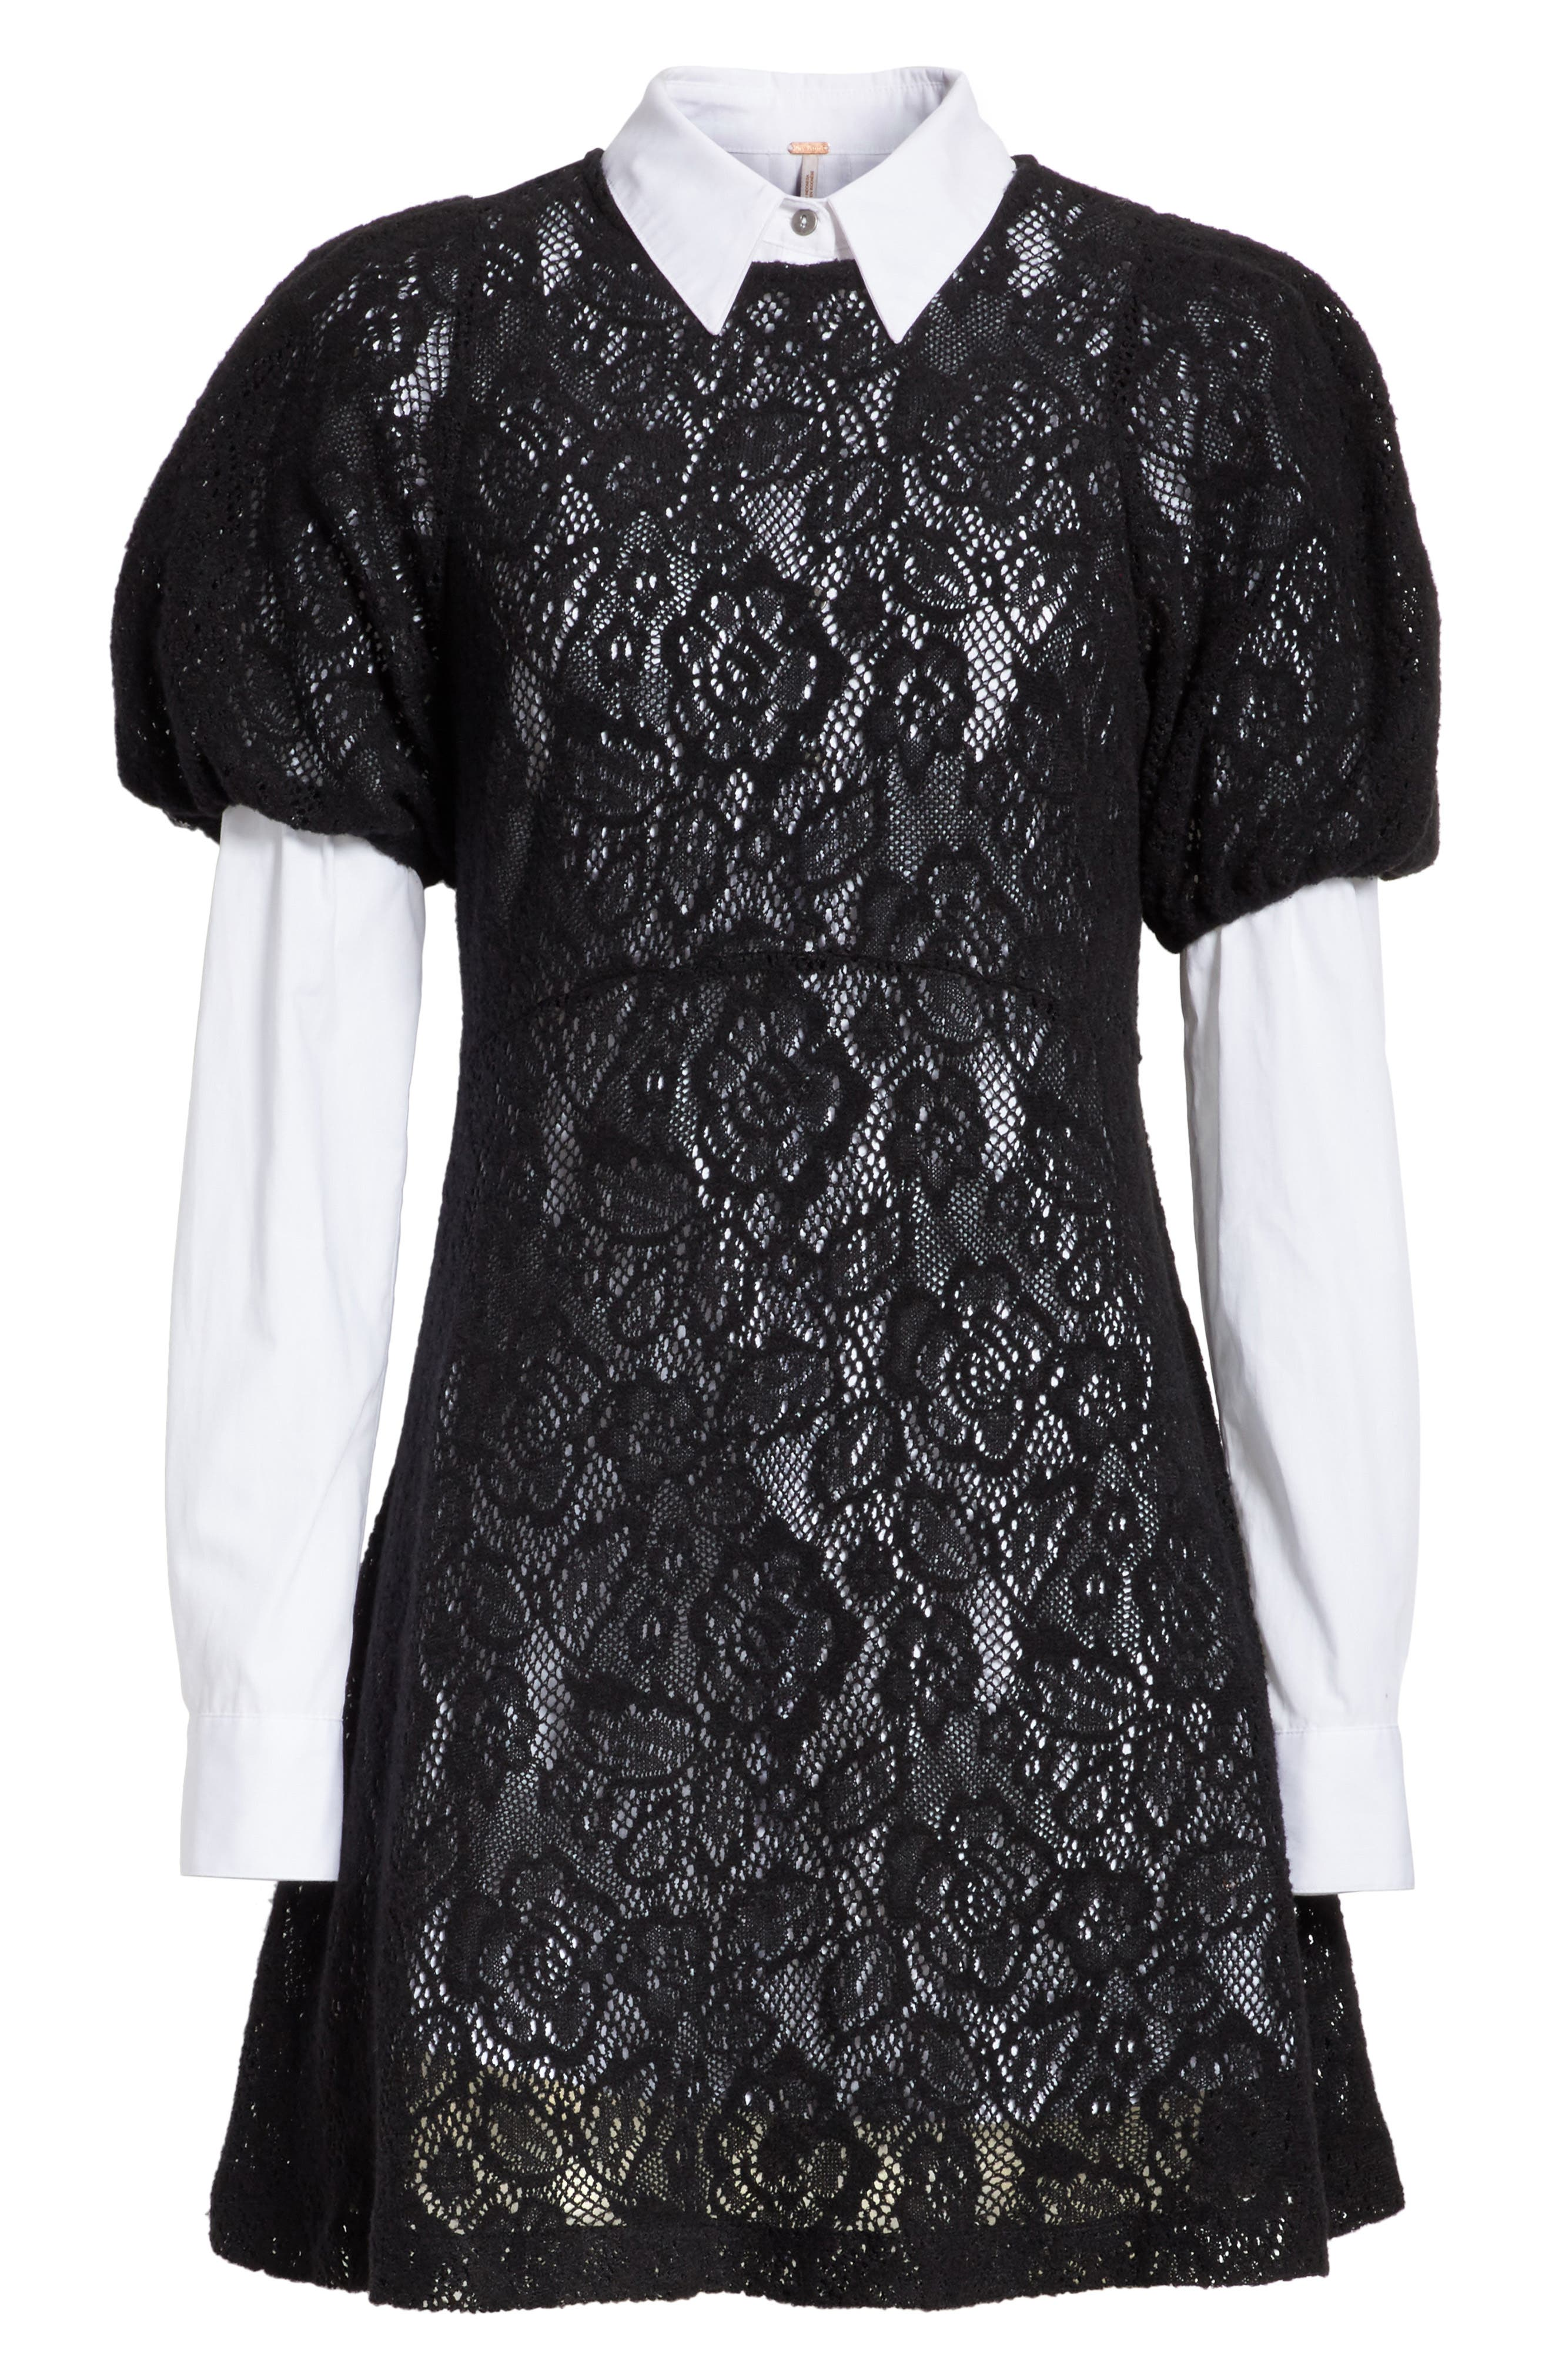 Pretty Princess Dress Shirtdress with Lace Overlay,                             Alternate thumbnail 7, color,                             019